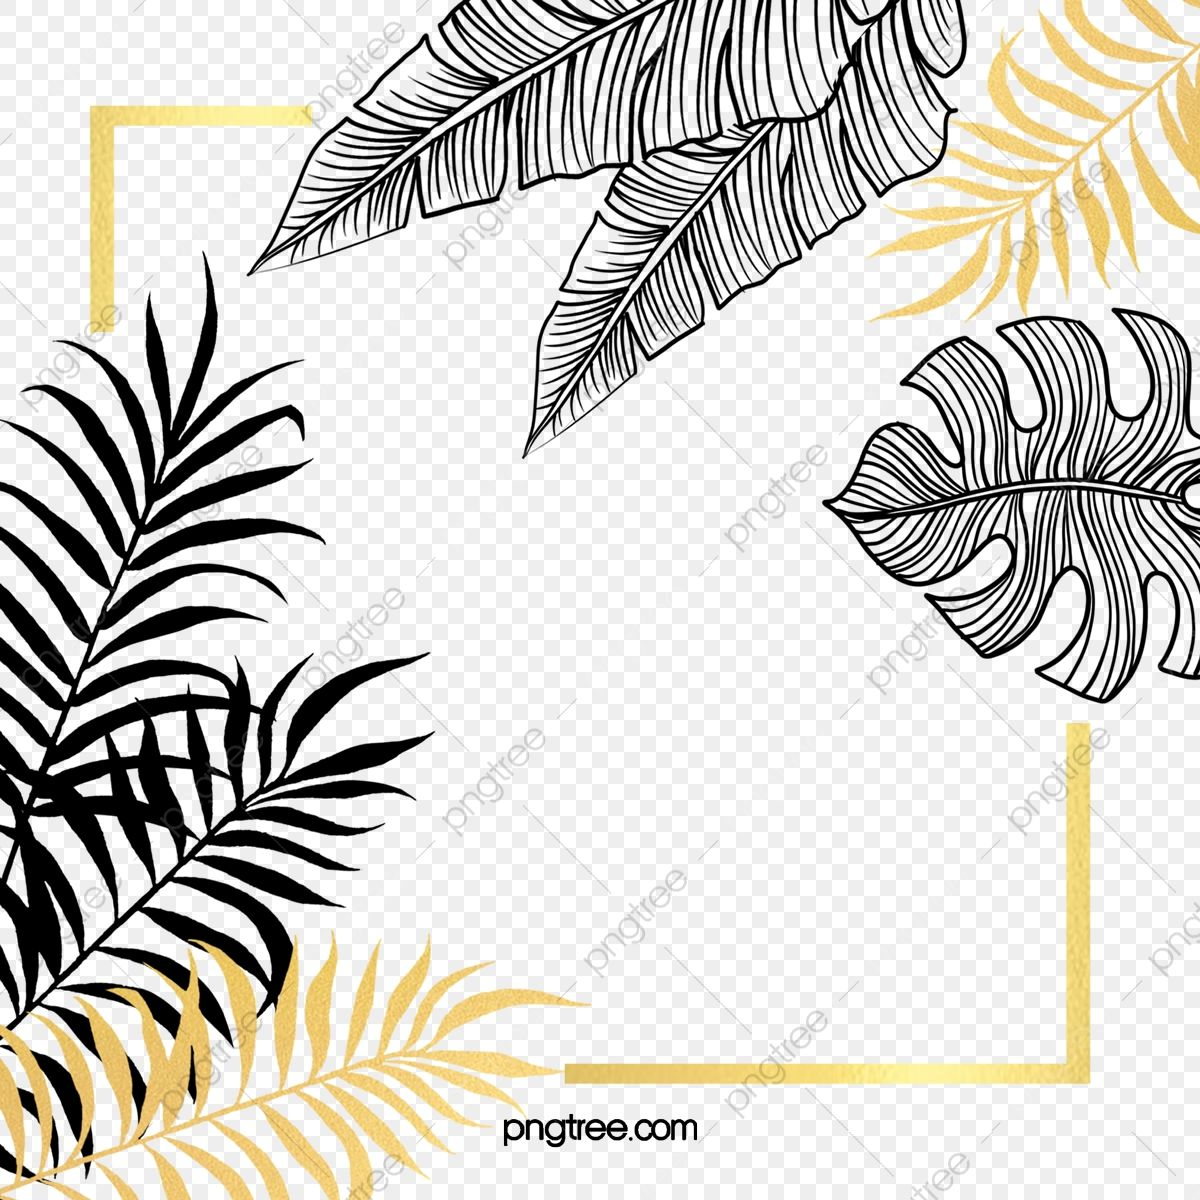 Black Gold Plant Leaves Hand Painted Border Gold Leaf Black Hand Painted Leaf Png Transparent Clipart Image And Psd File For Free Download Plant Leaves Leaf Background Graphic Resources